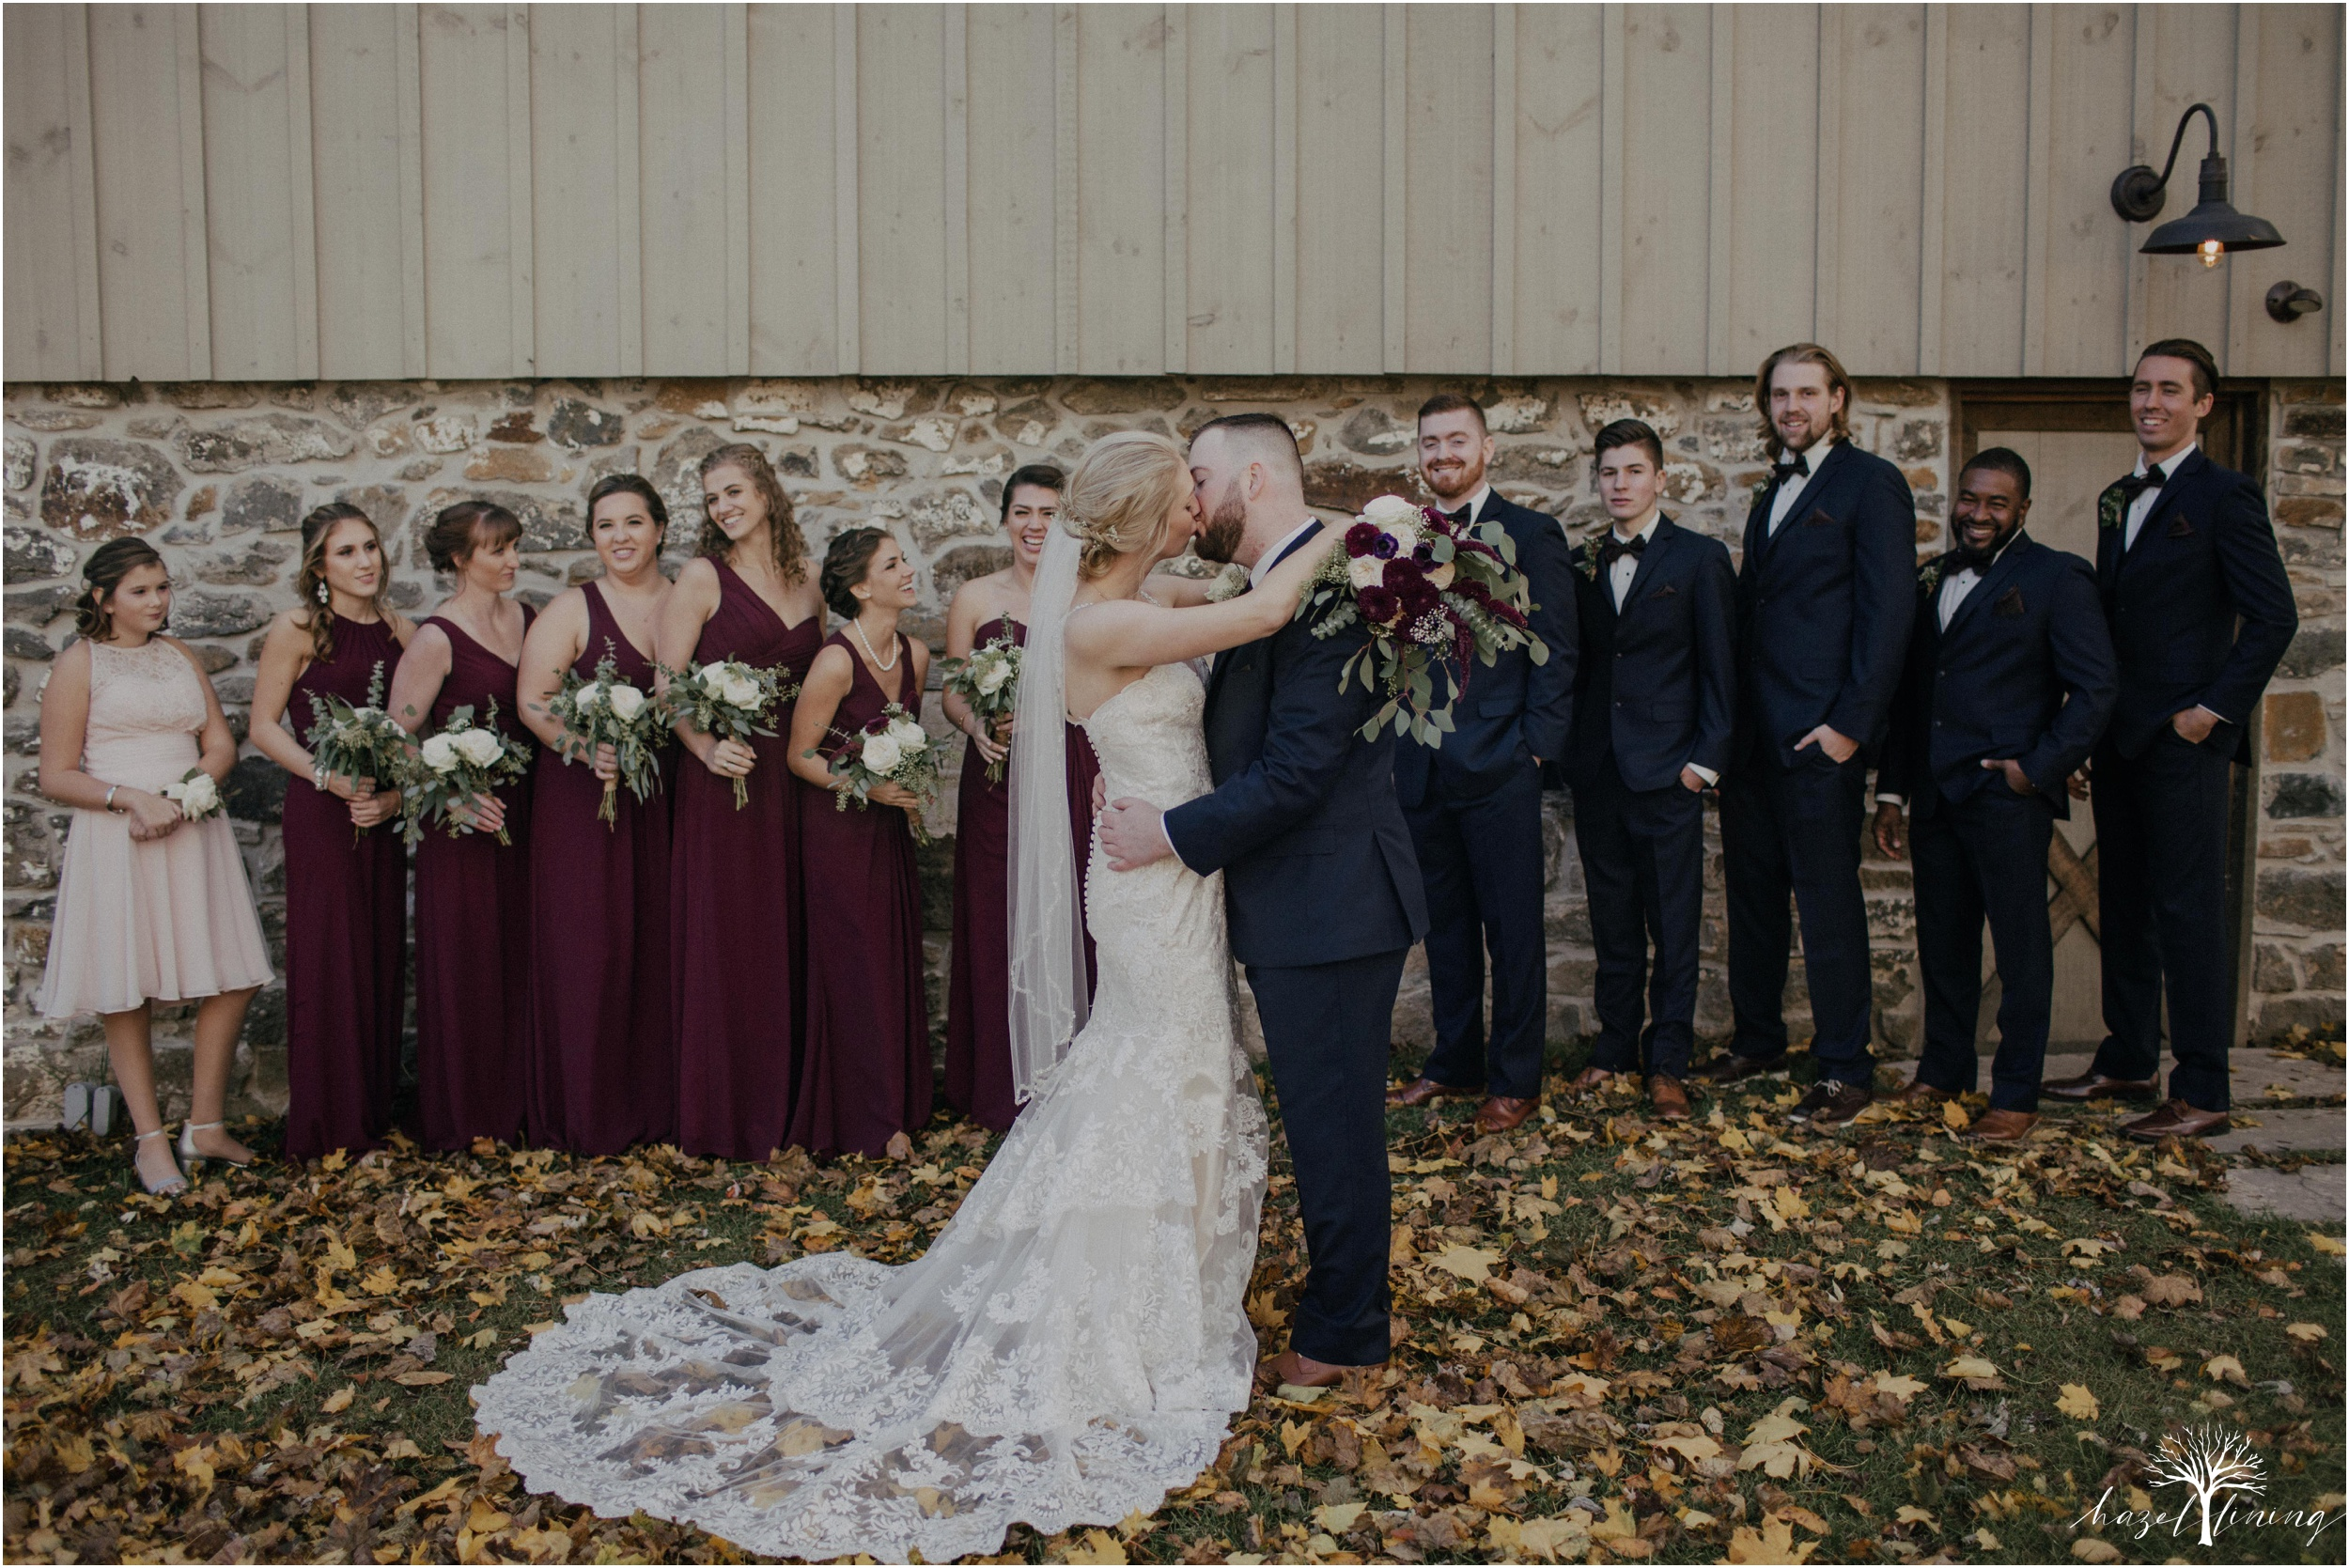 briana-krans-greg-johnston-farm-bakery-and-events-fall-wedding_0061.jpg